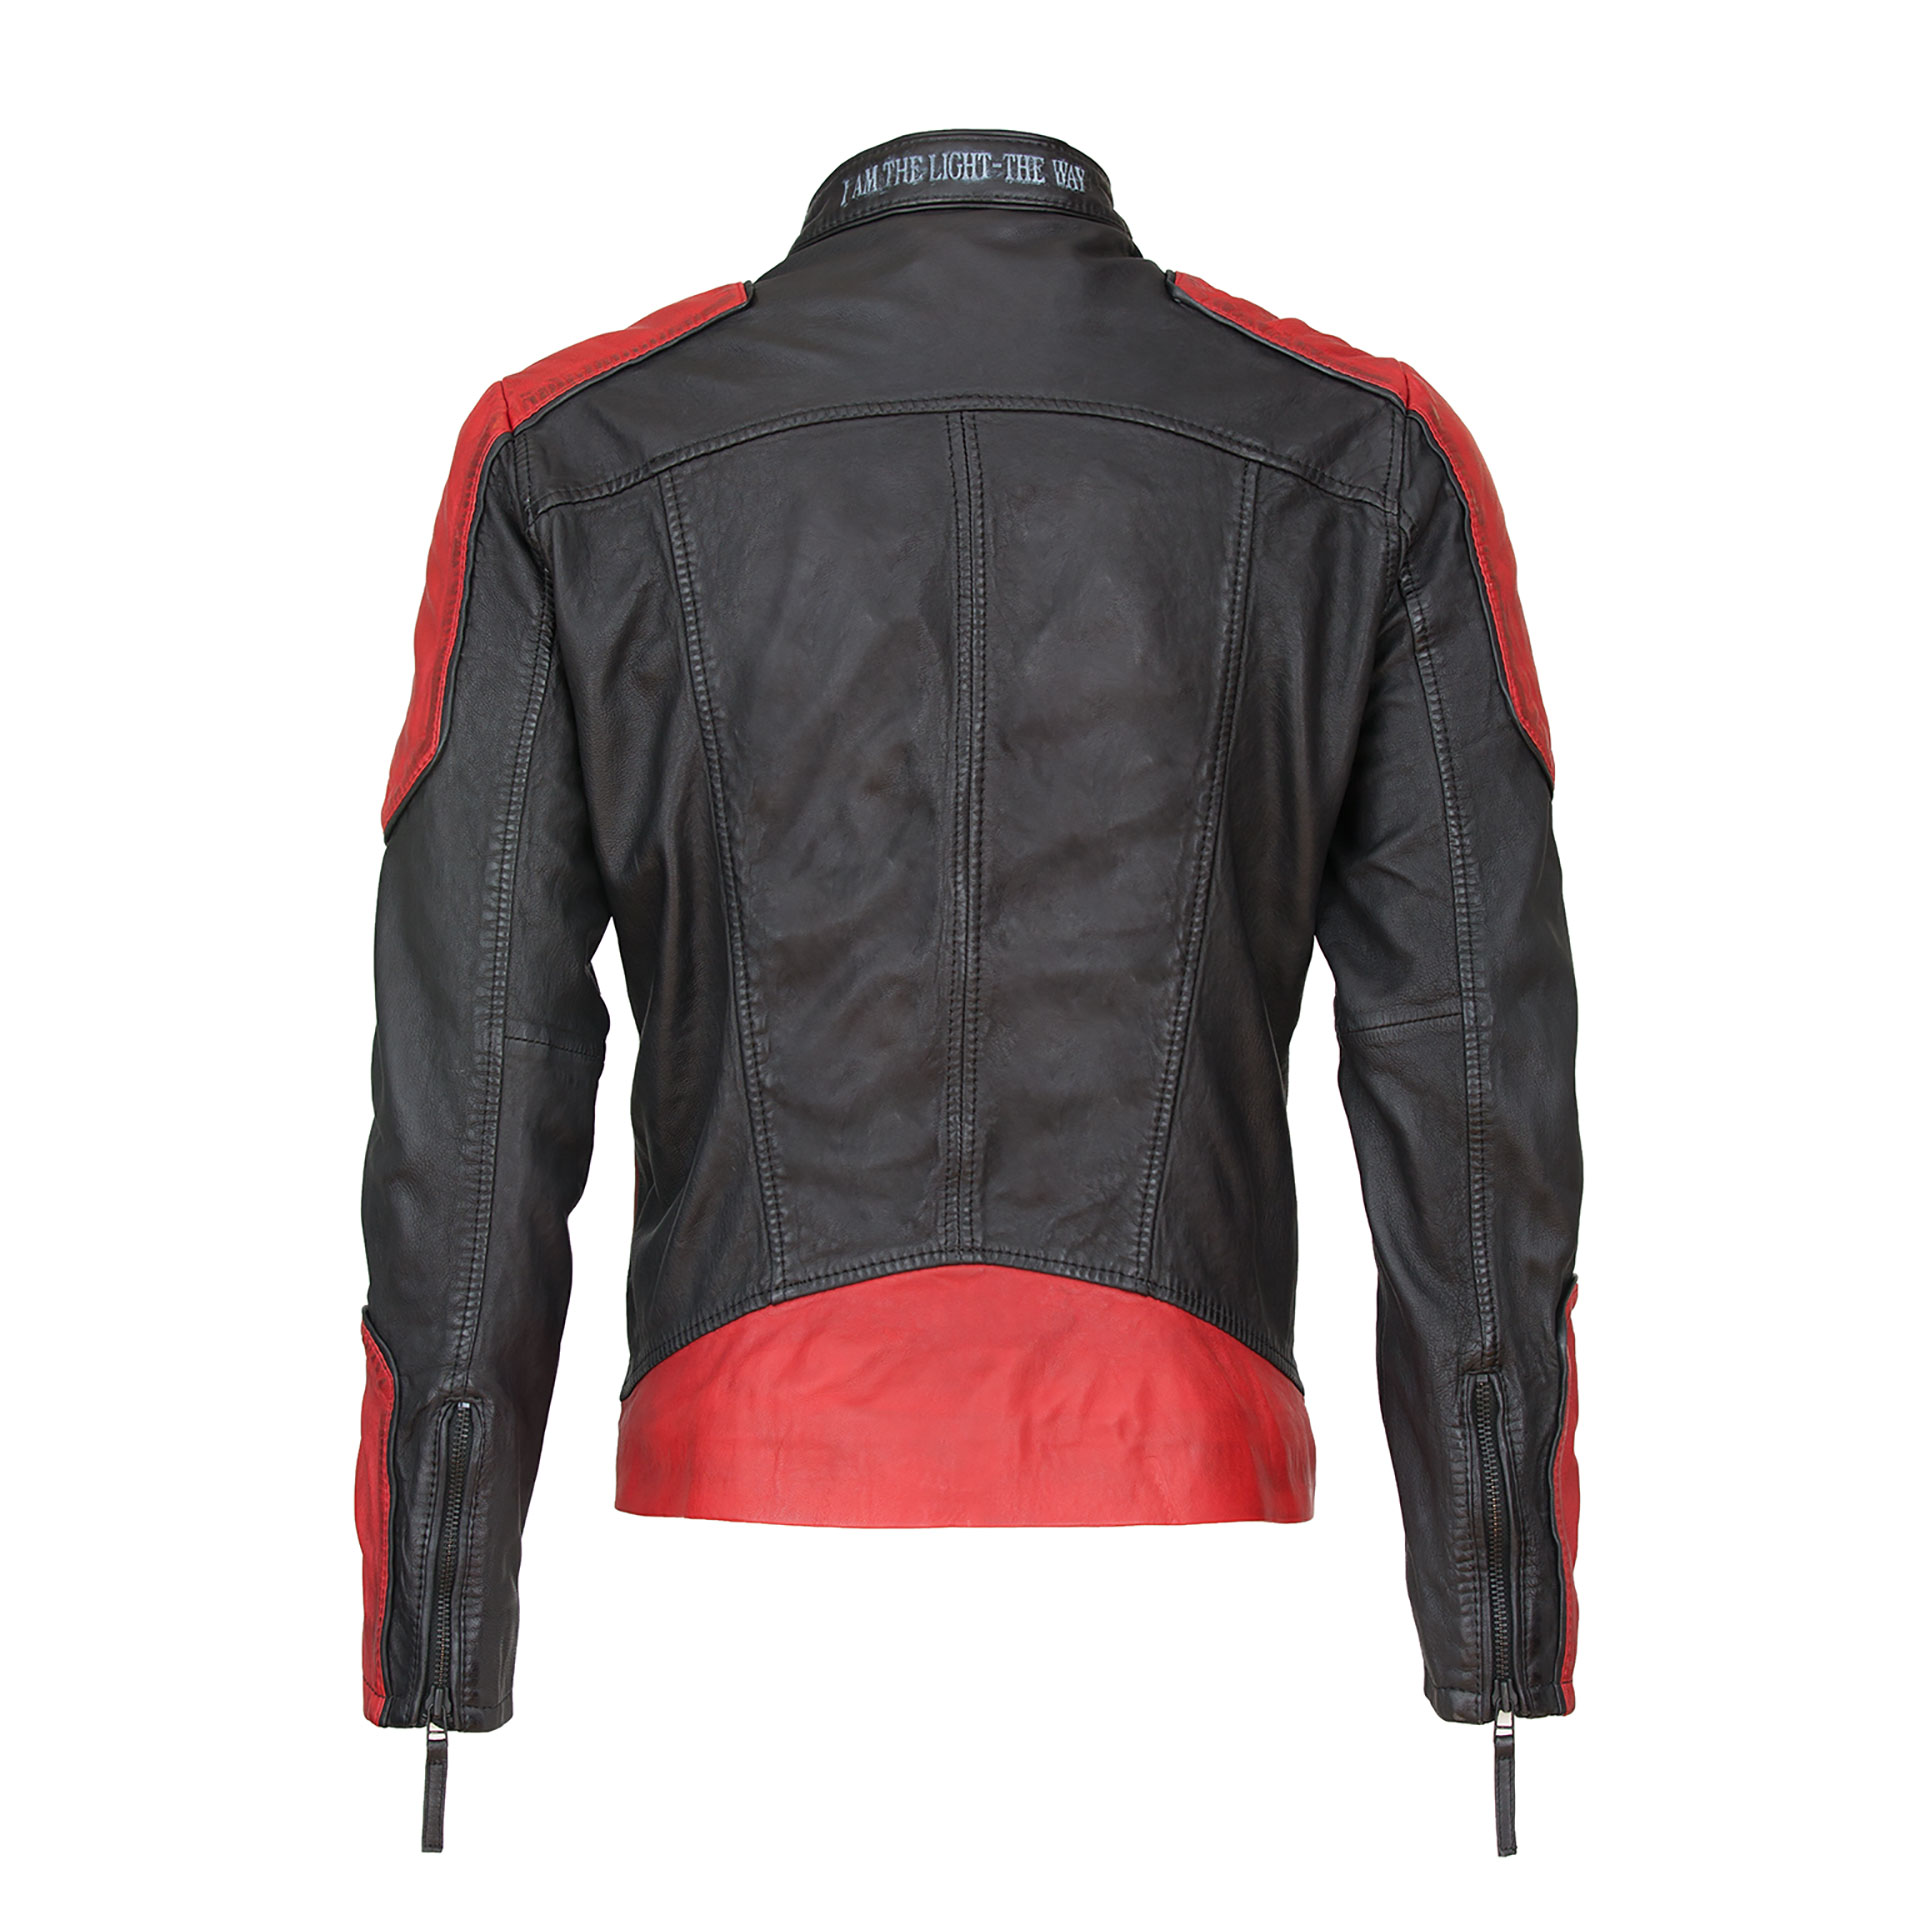 Leather jacket target - The Suicide Squad Deadshot Never Miss Leather Jacket Will Be Available August 31 2016 But It Can Be Pre Ordered Now For 249 99 At Merchoid Com